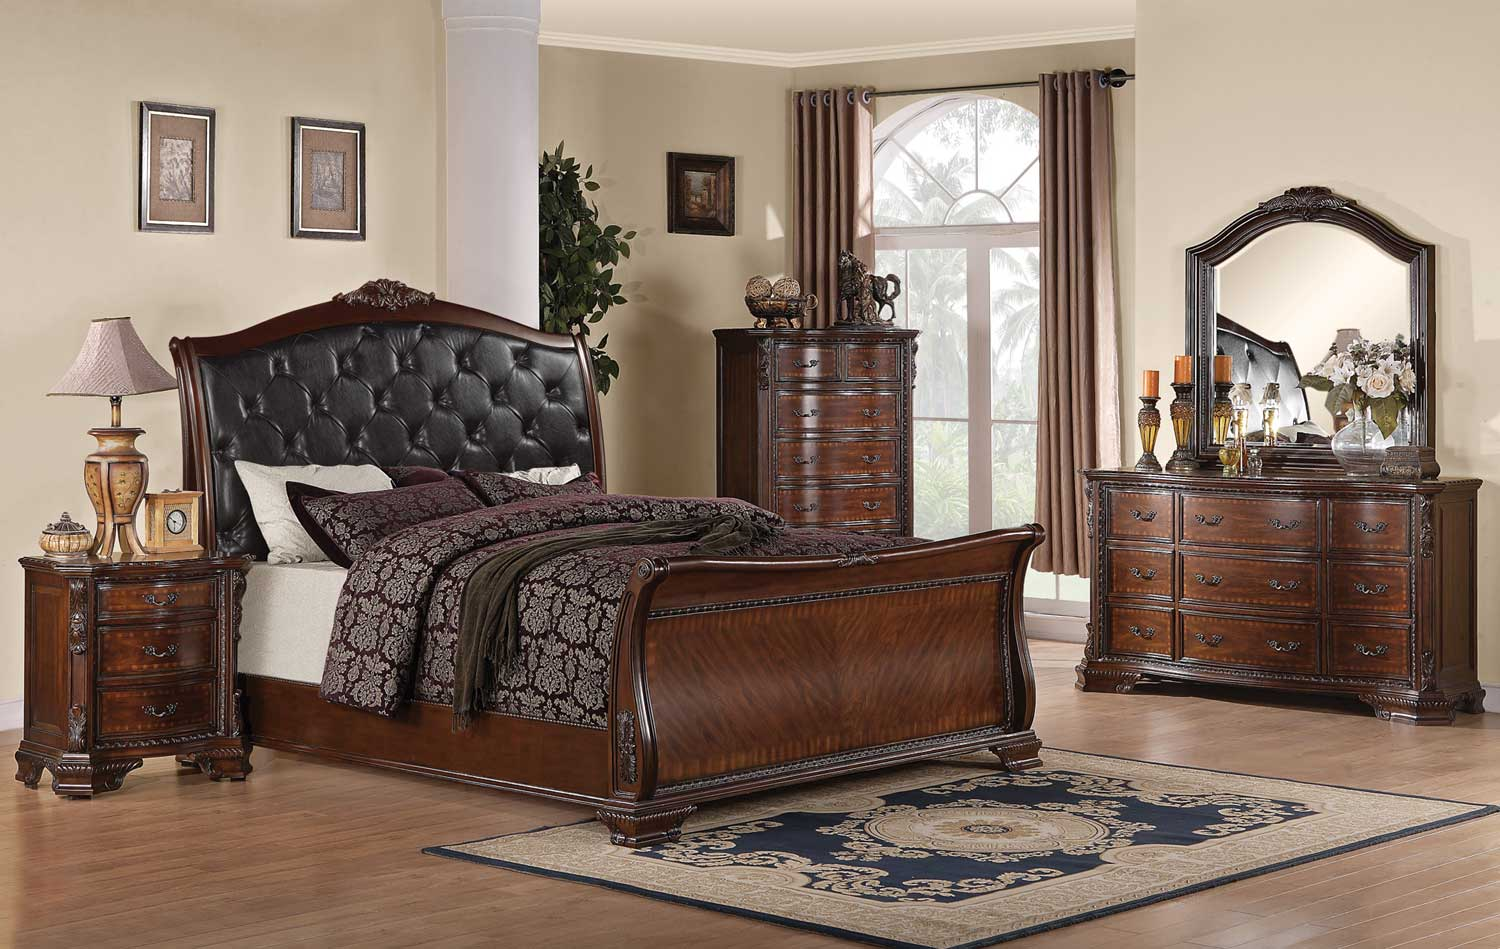 Coaster Maddison Bedroom Set - Brown Cherry